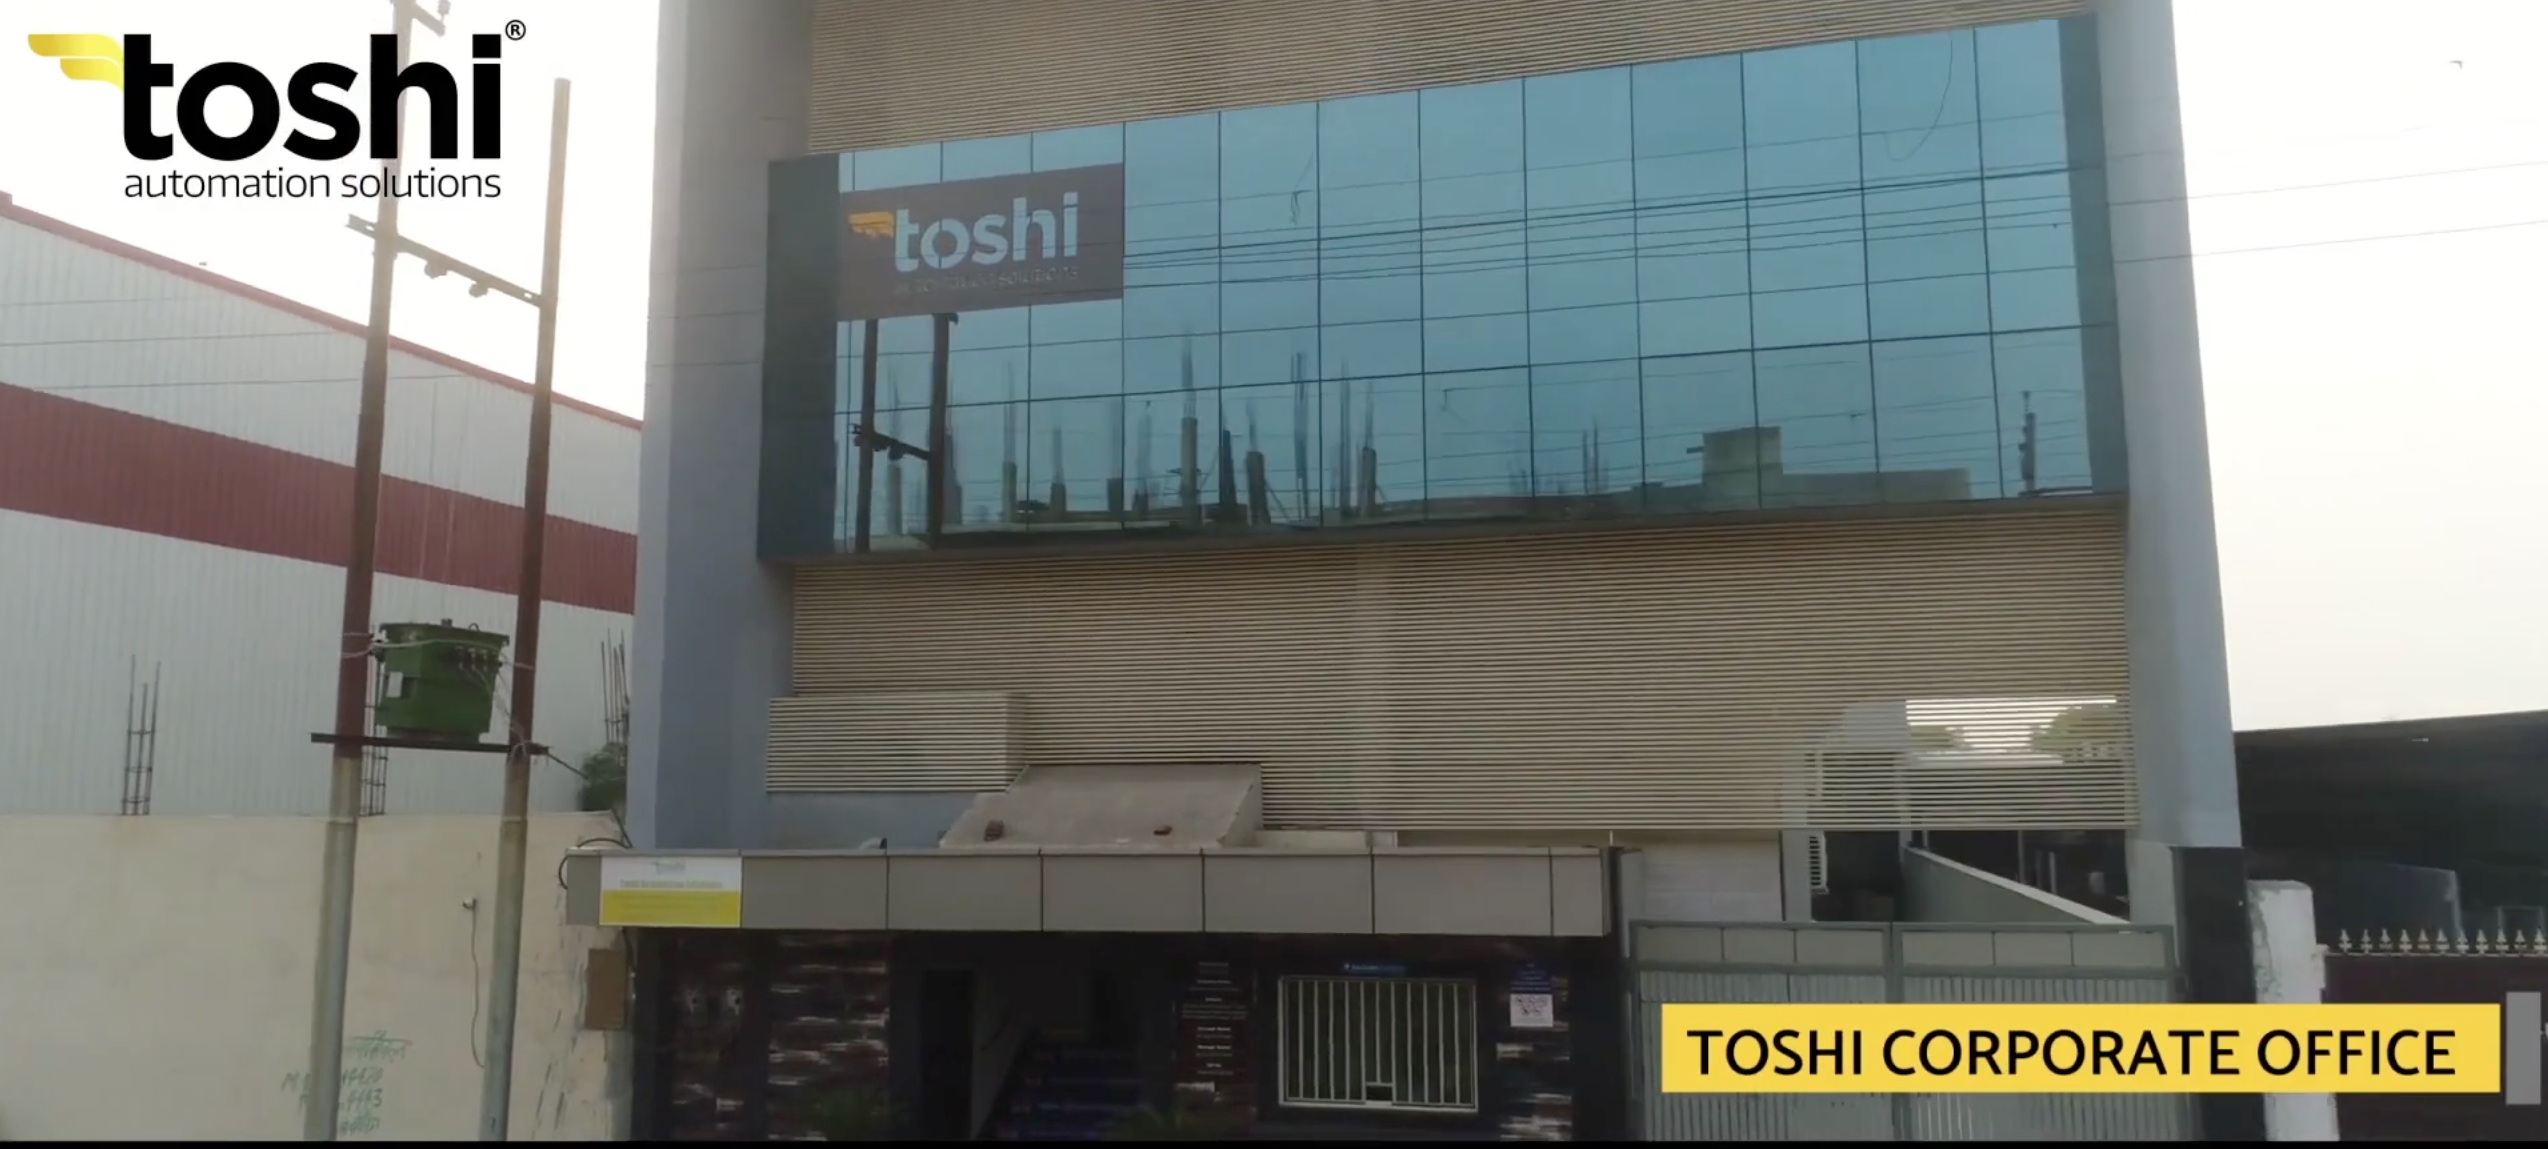 Toshi Automation Solutions - New Corporate Office - December 2018